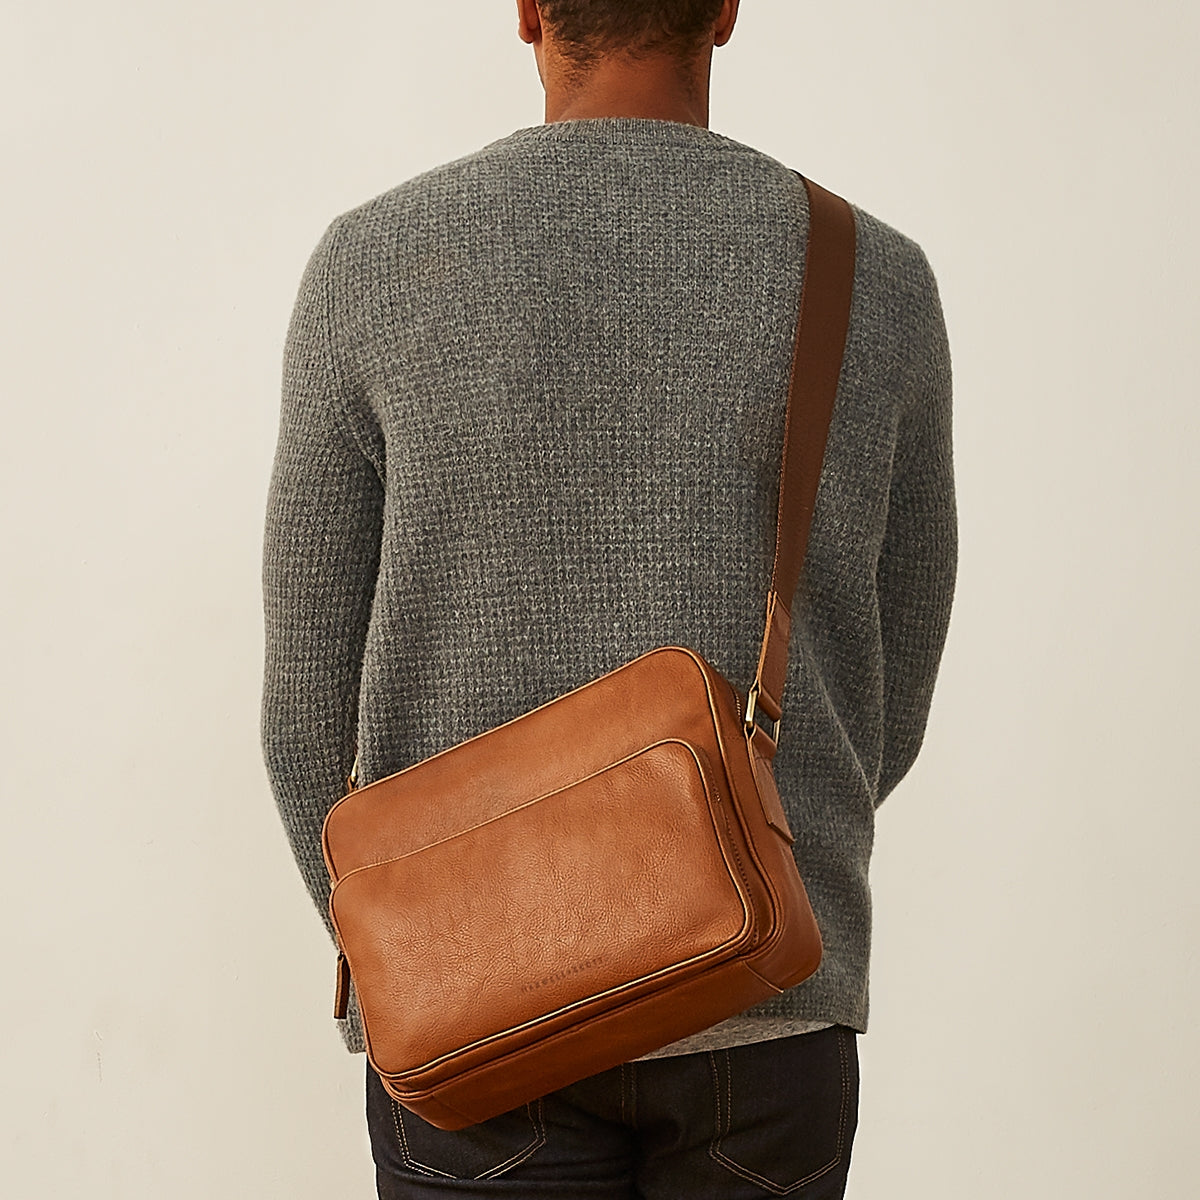 Image 8 of the 'SantinoM' Men's Italian Black Leather Messenger Bag